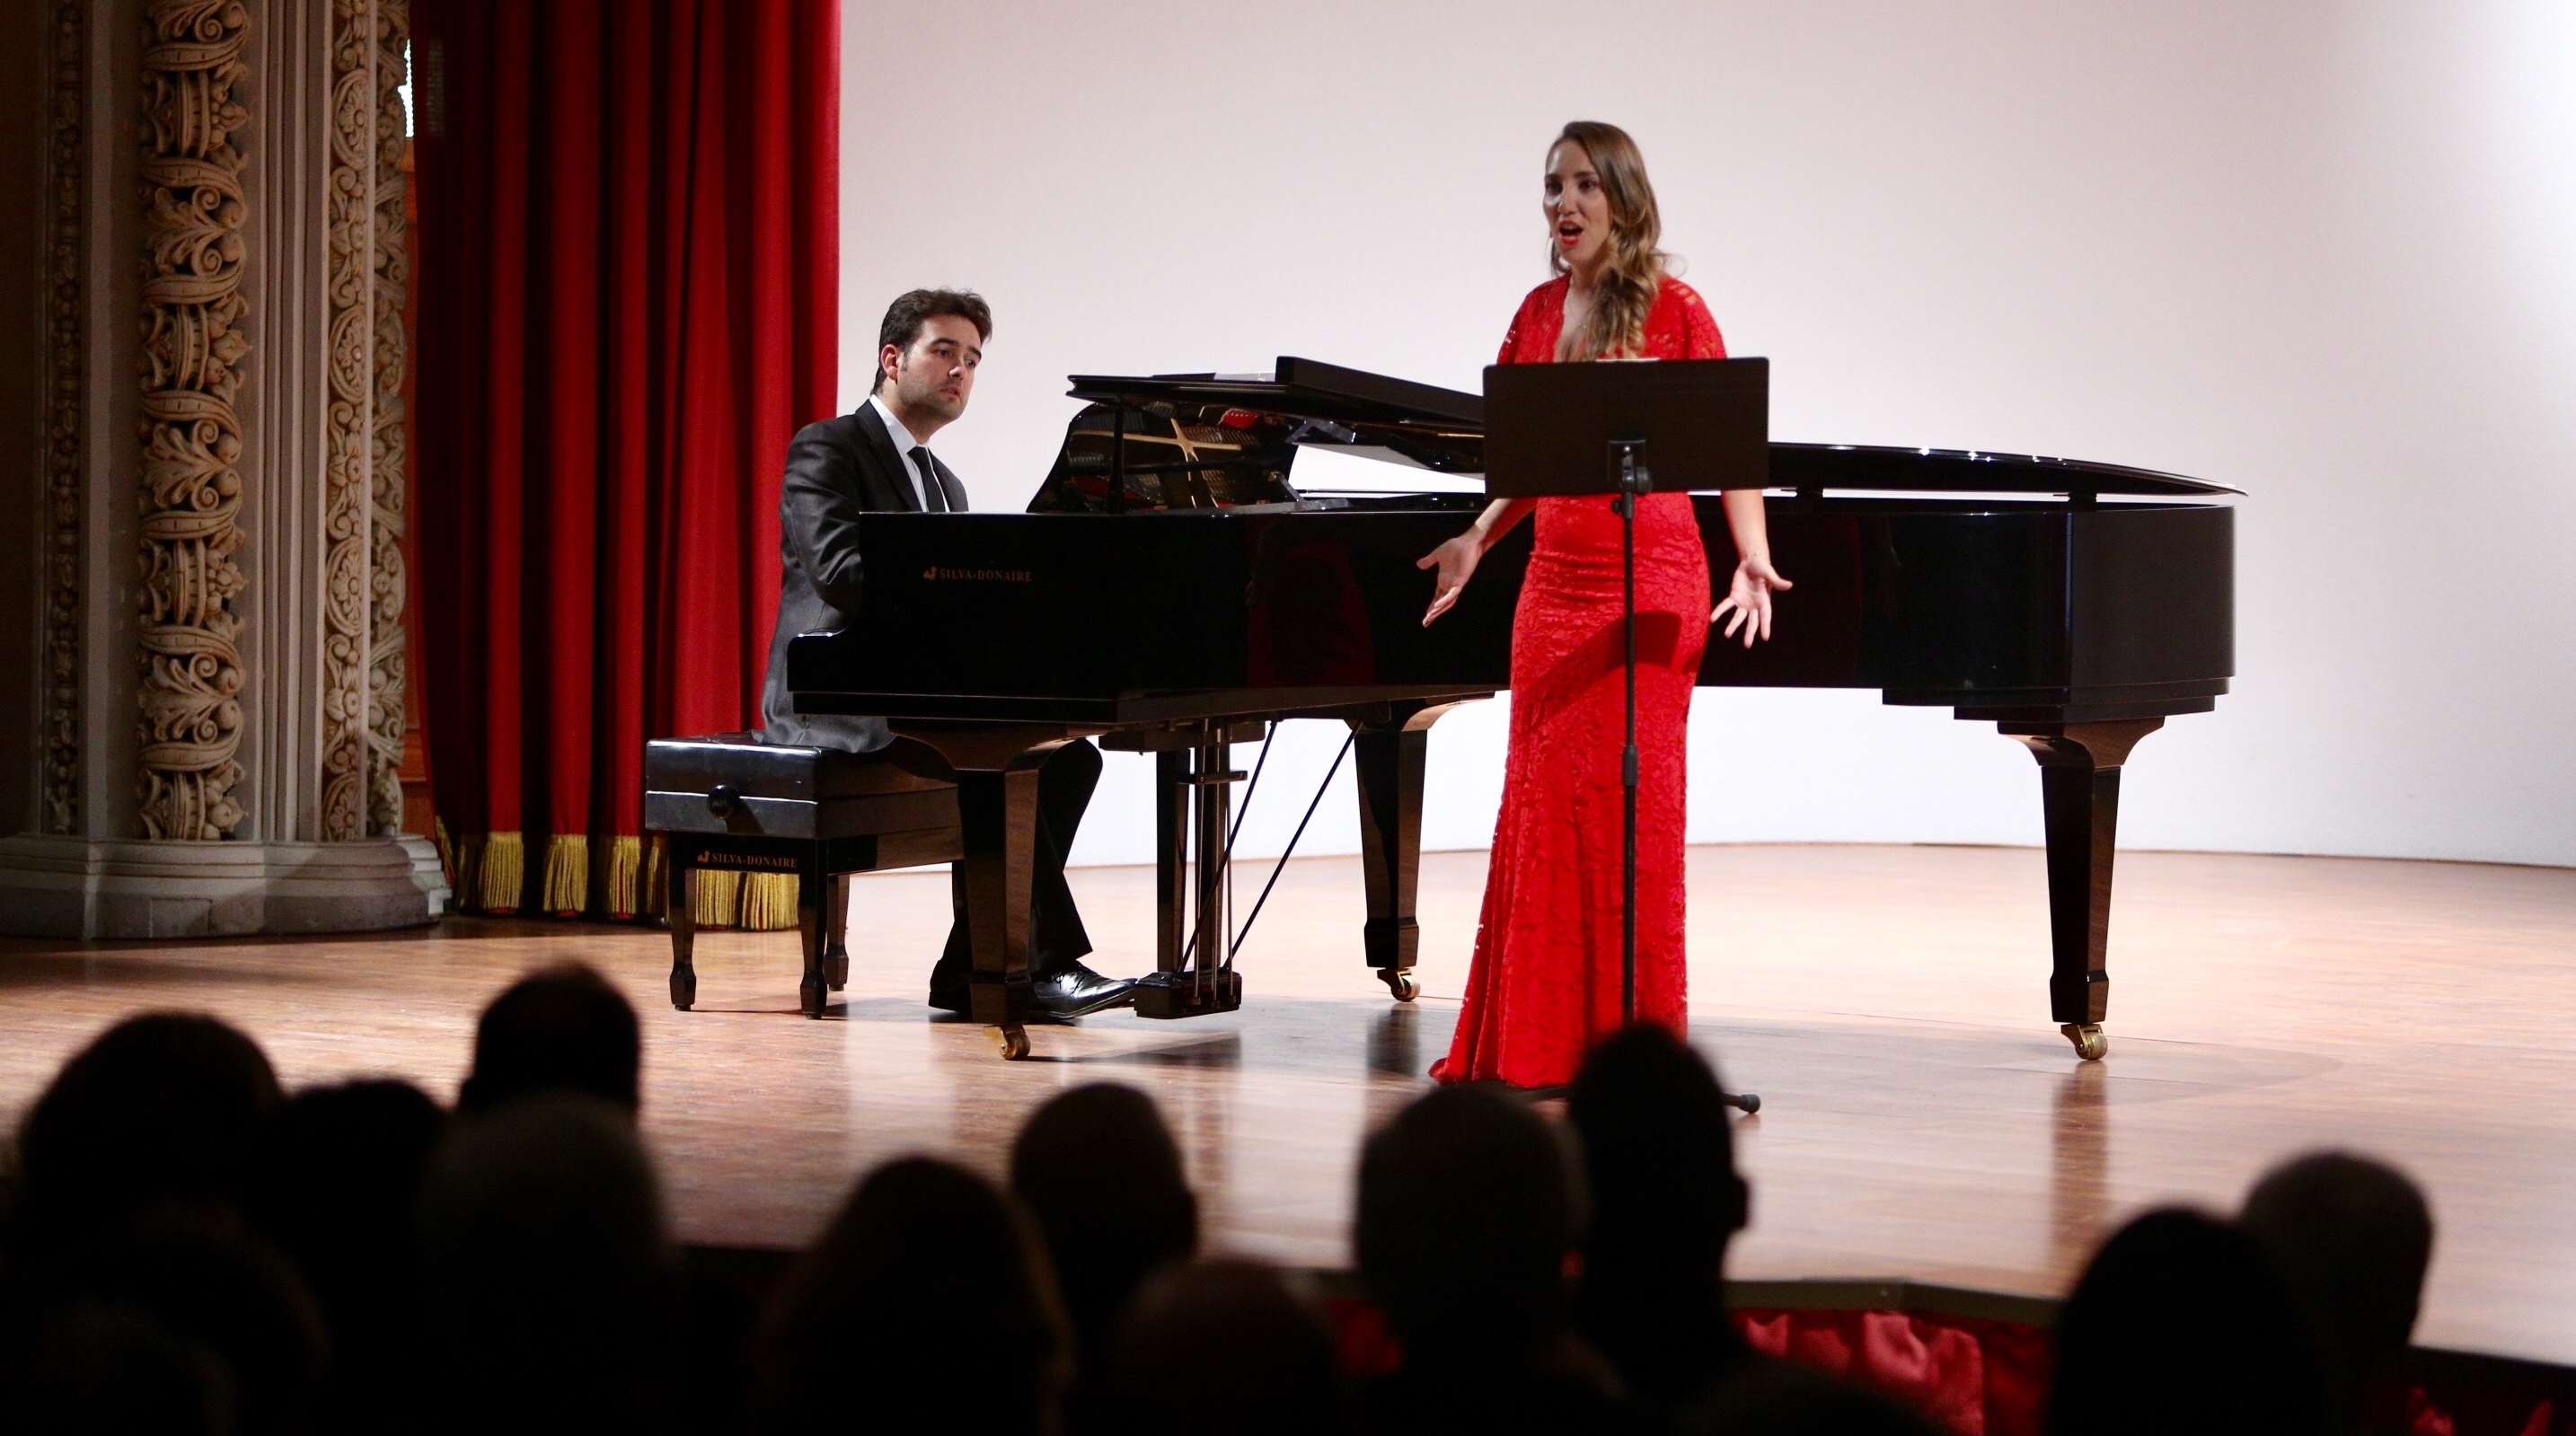 Carolina Gilabert & Miguel Ángel Acebo. Recital in Sevilla